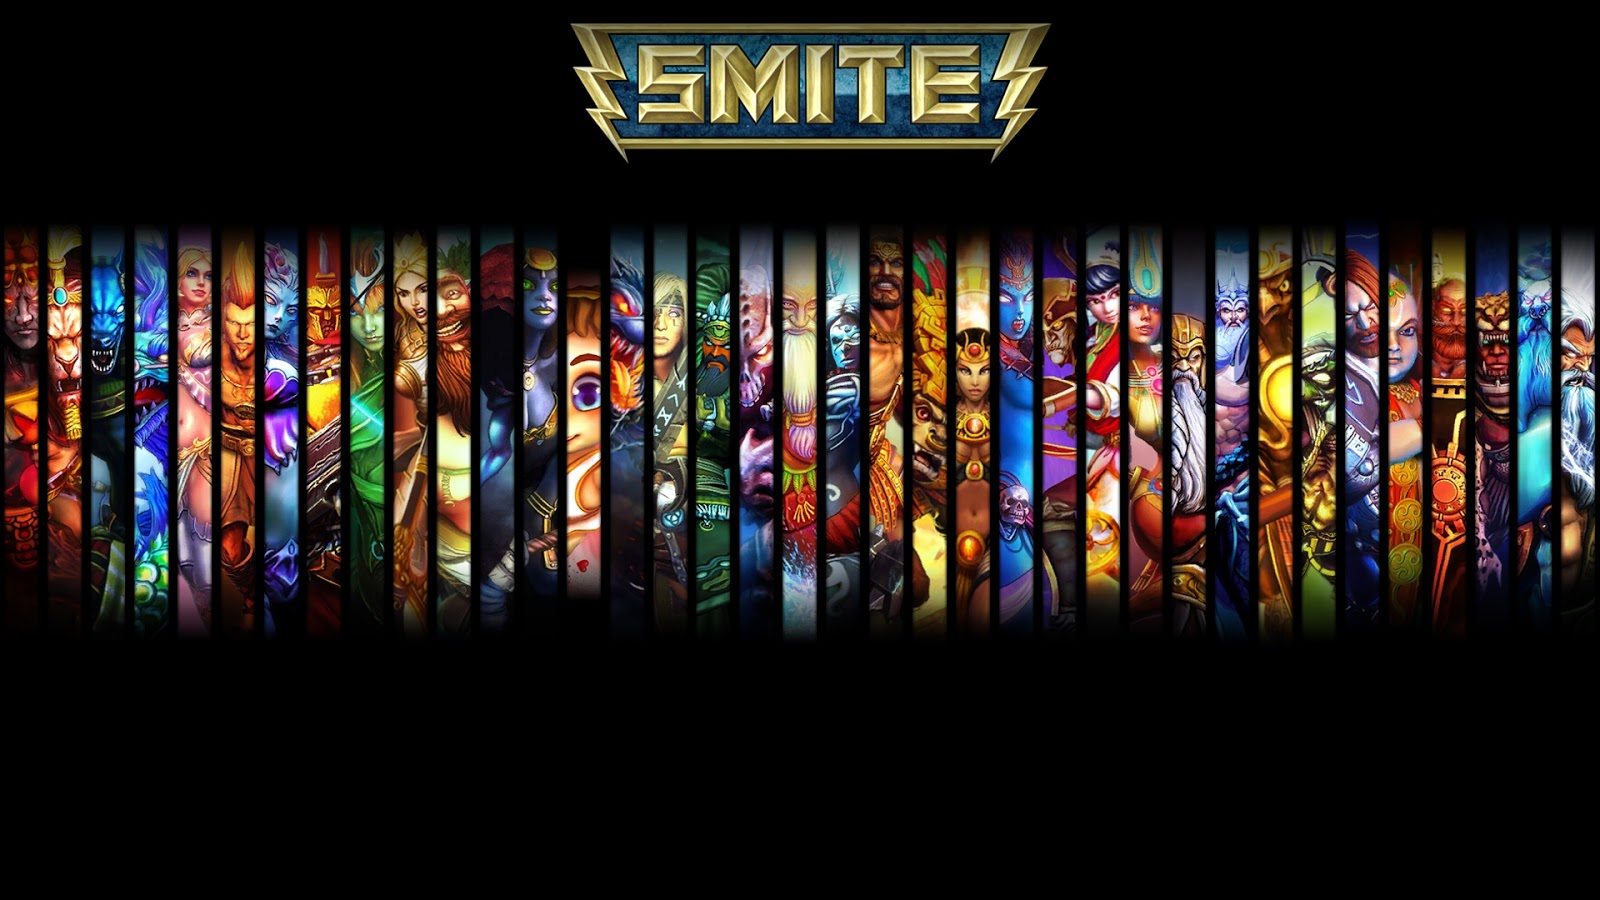 smite wallaper smite wallpaper neithFreya Smite Wallpaper